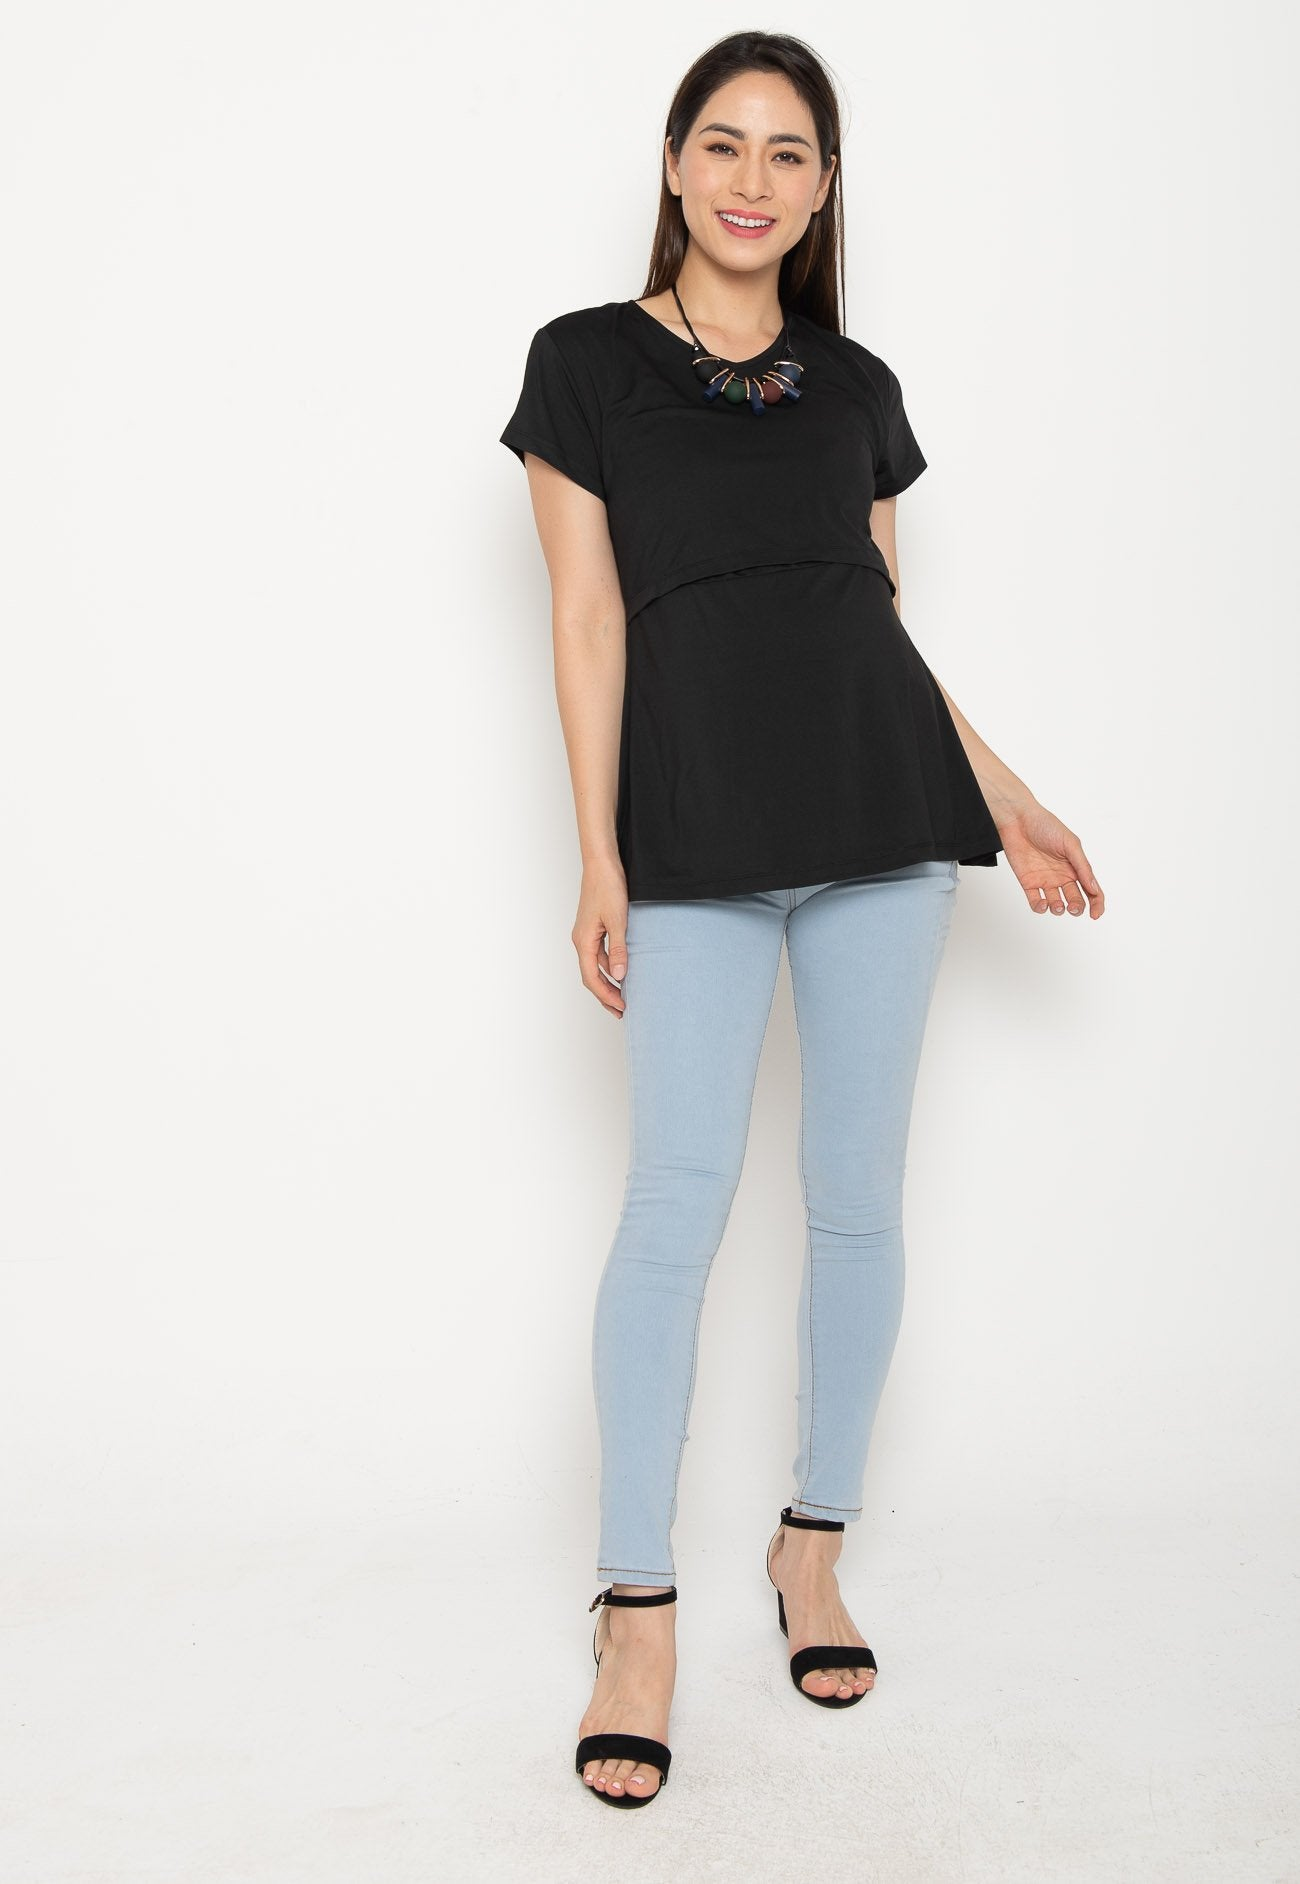 Cato Basic Nursing Tee in Black  by JumpEatCry - Maternity and nursing wear